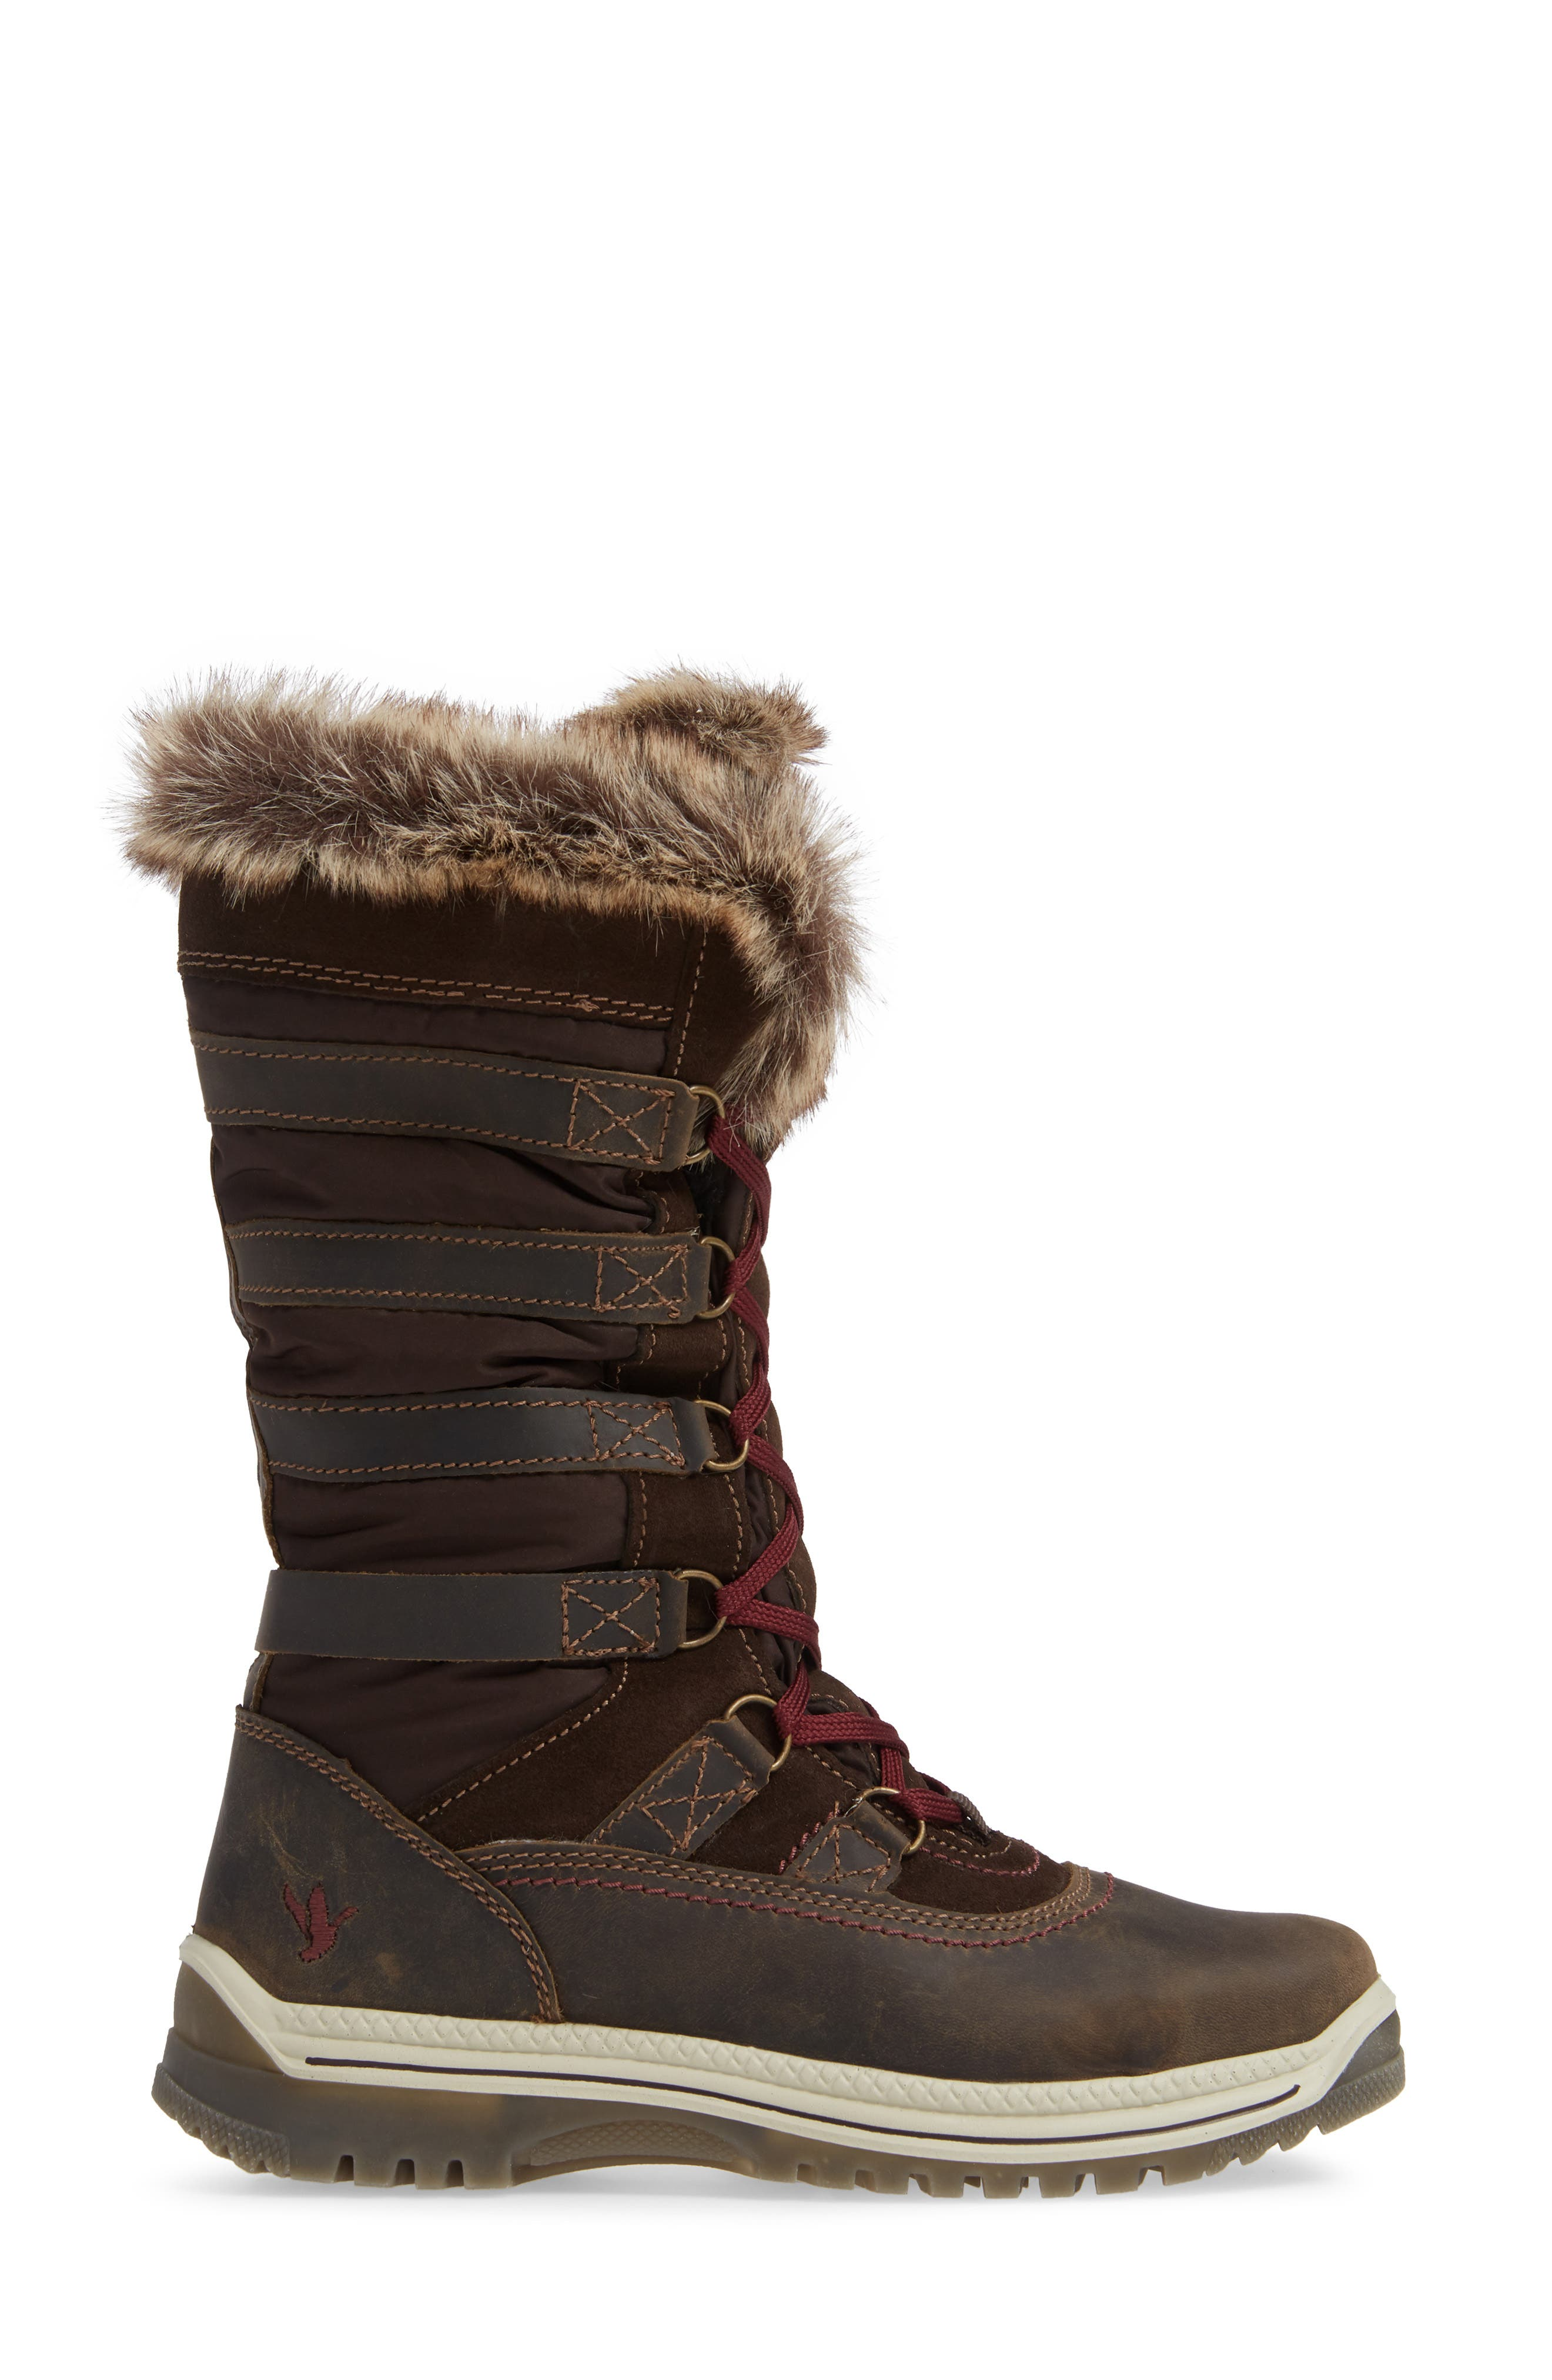 Milani Waterproof Faux Fur Boot,                             Alternate thumbnail 3, color,                             BROWN / BROWN LEATHER